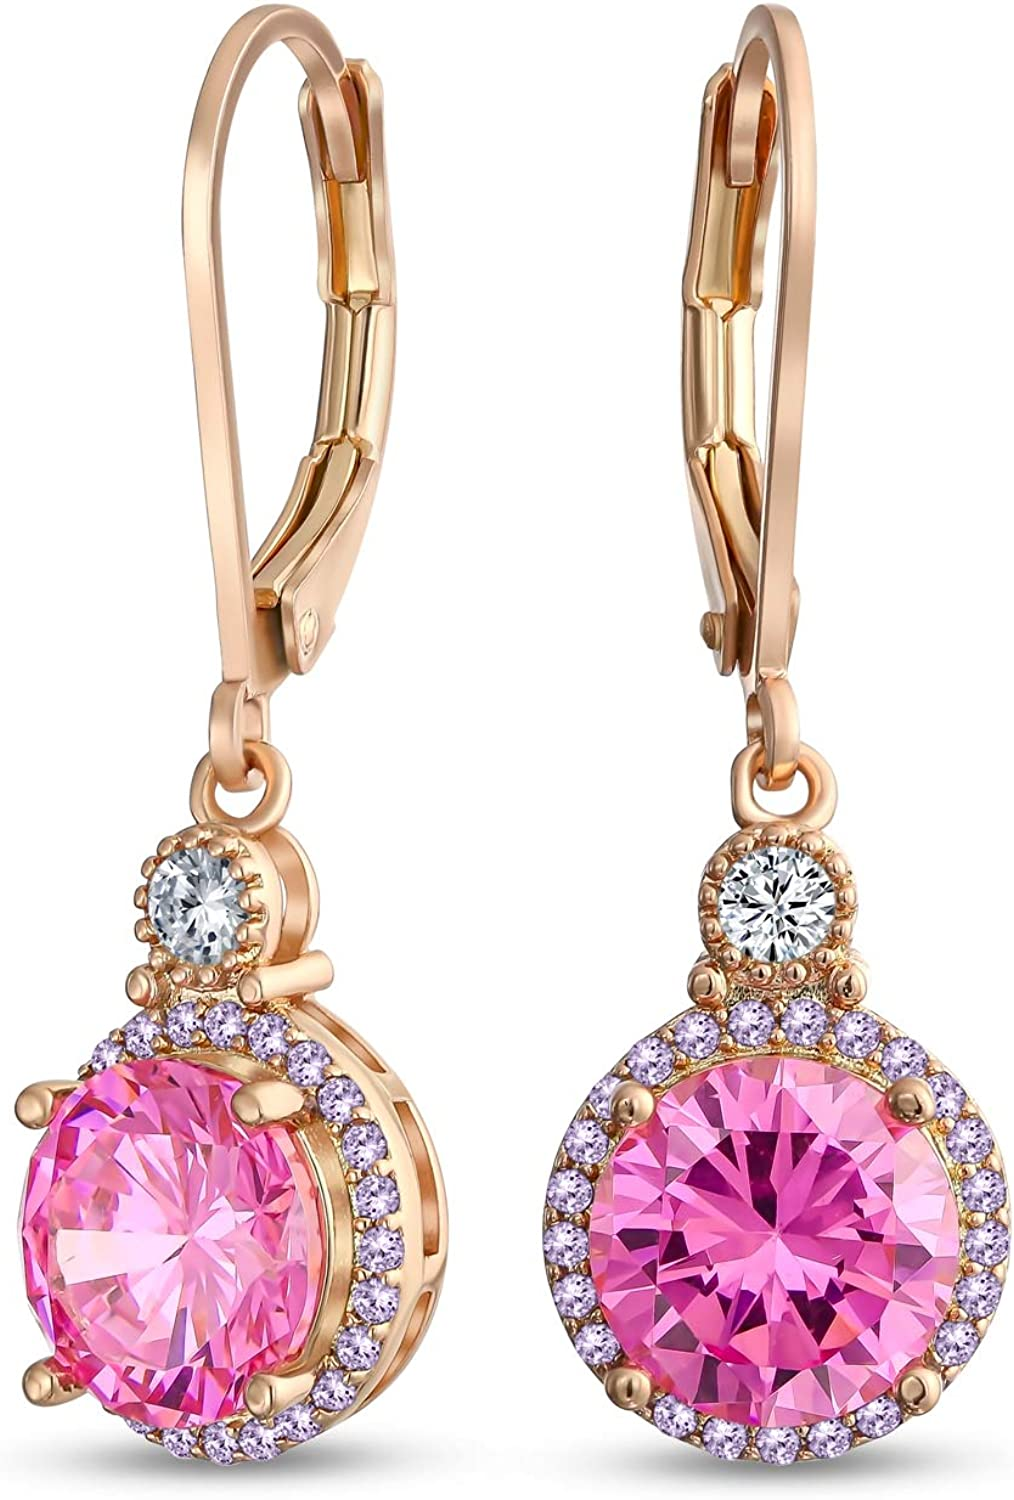 3.5CT Bridesmaid Wedding Round Solitaire Cubic Zirconia Halo AAA CZ Leverback Dangle Drop Earrings For Women More Colors